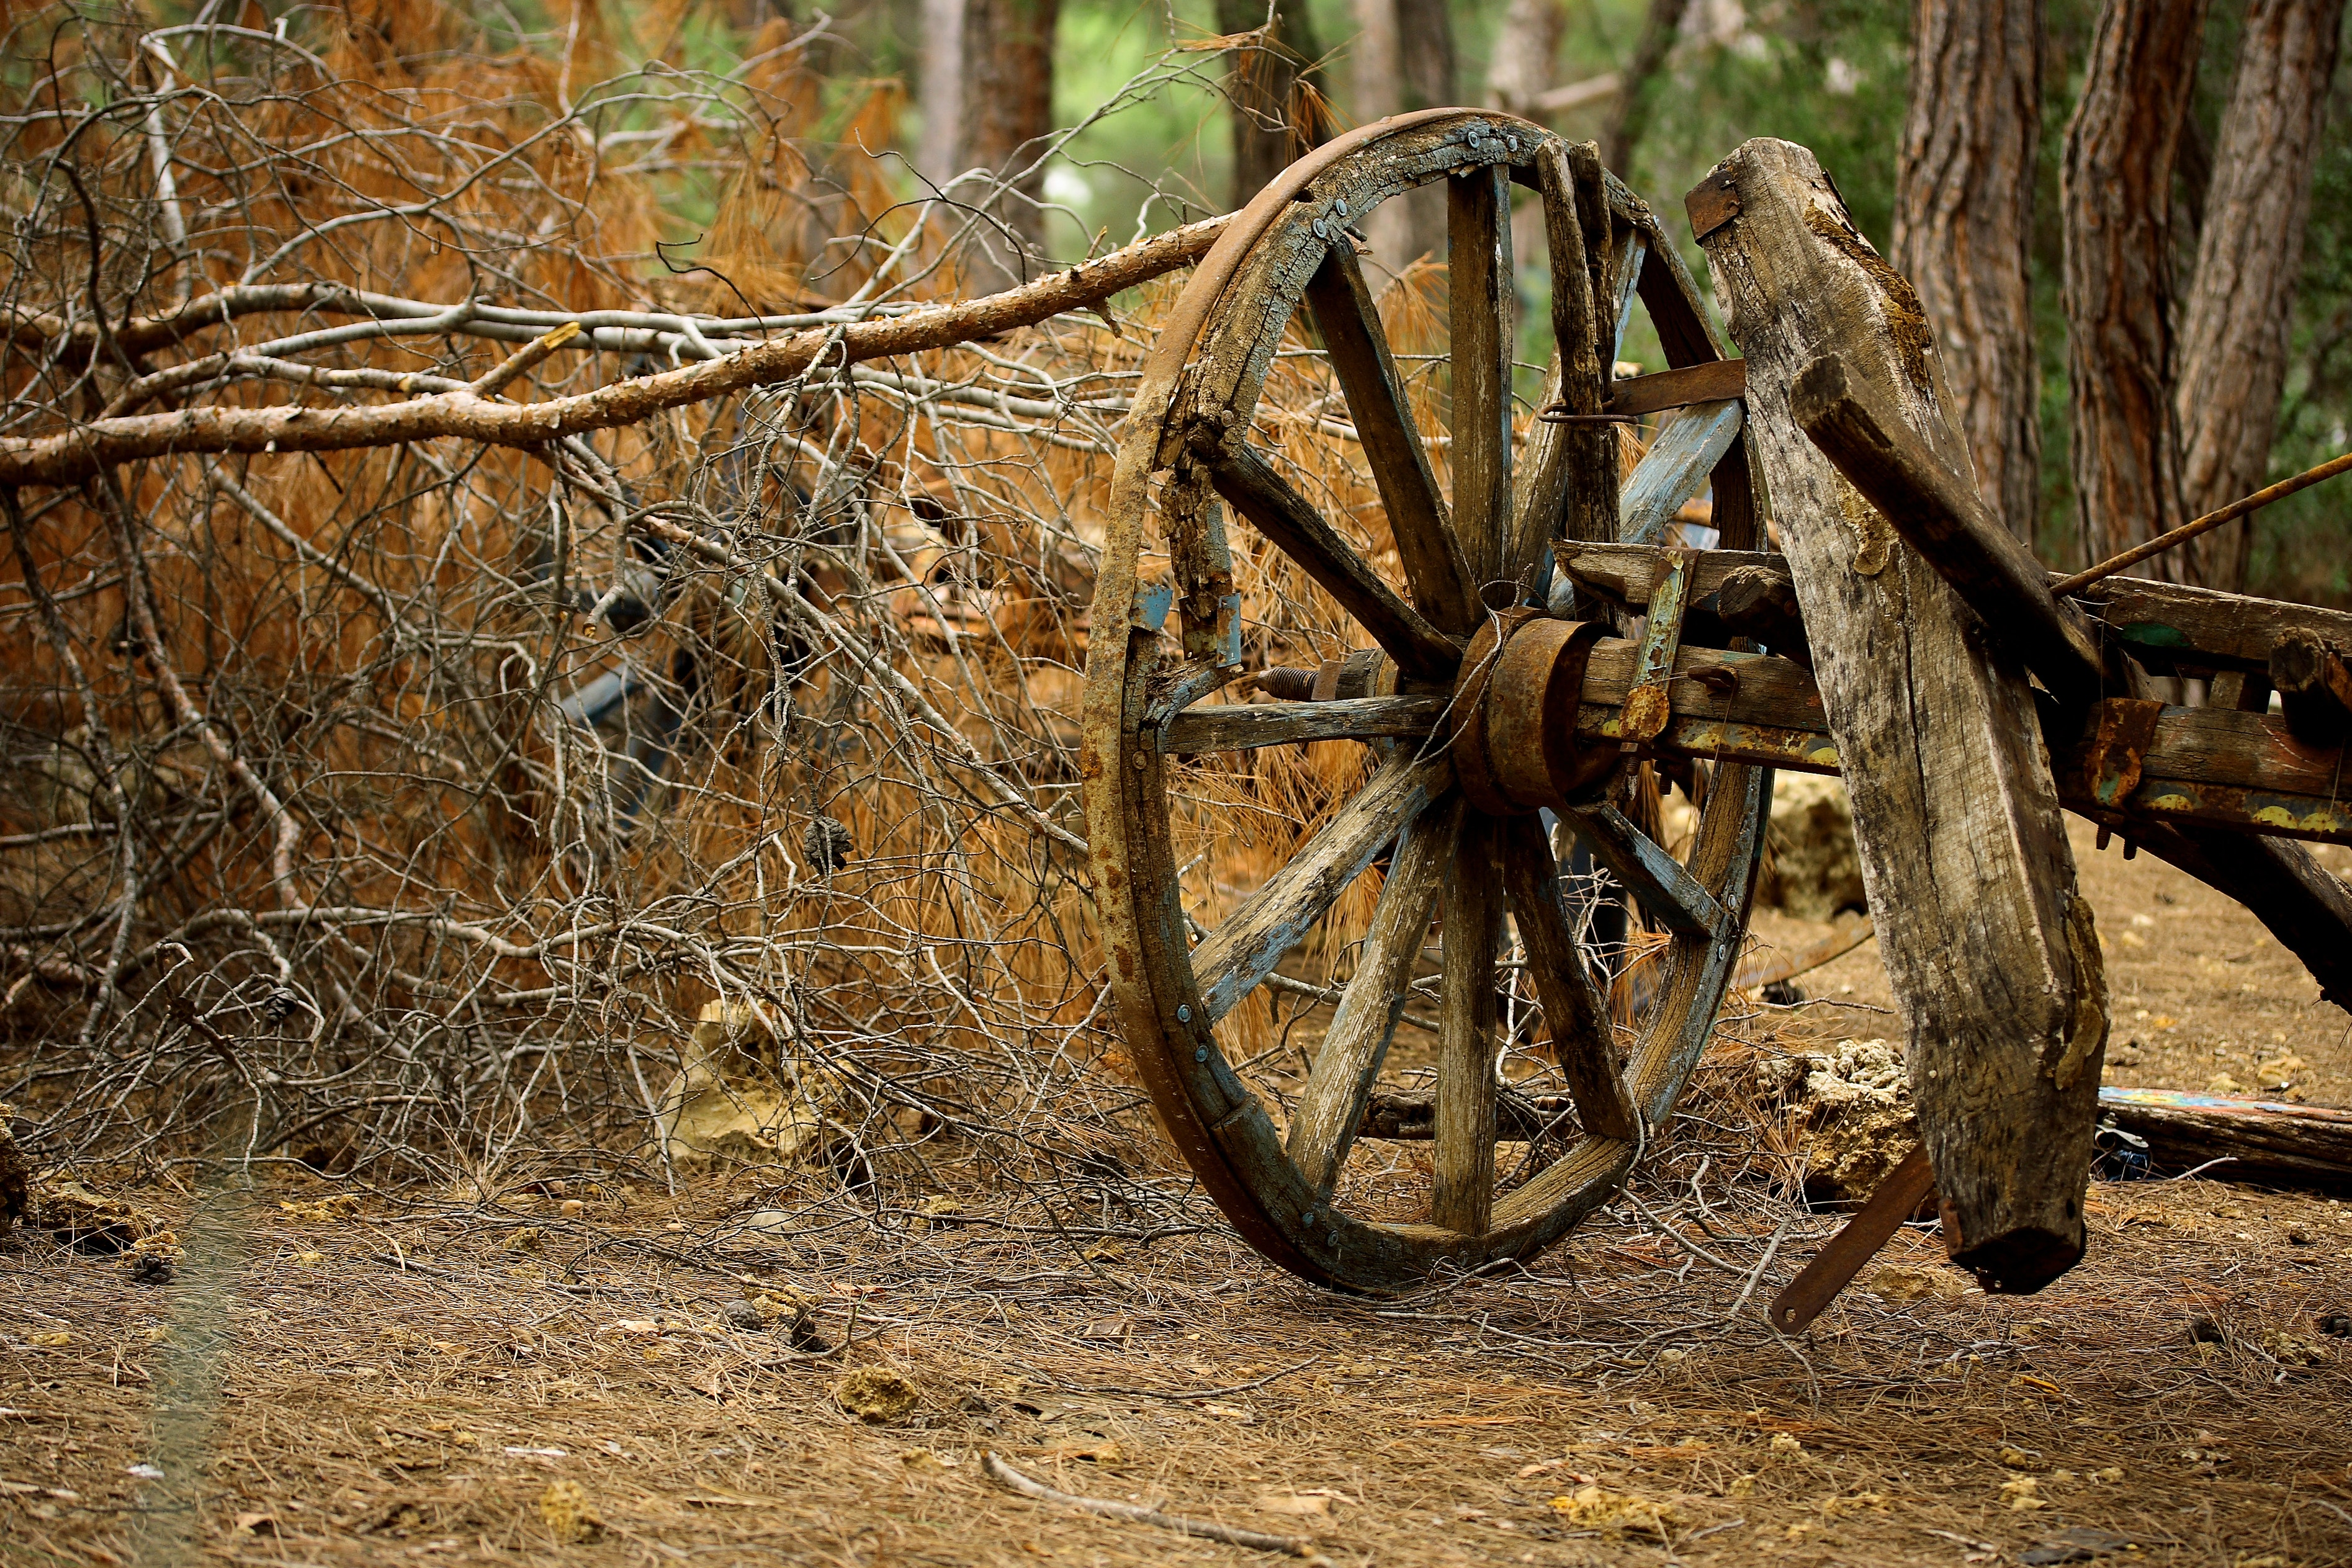 brown-carriage-wheel-1457806.jpg